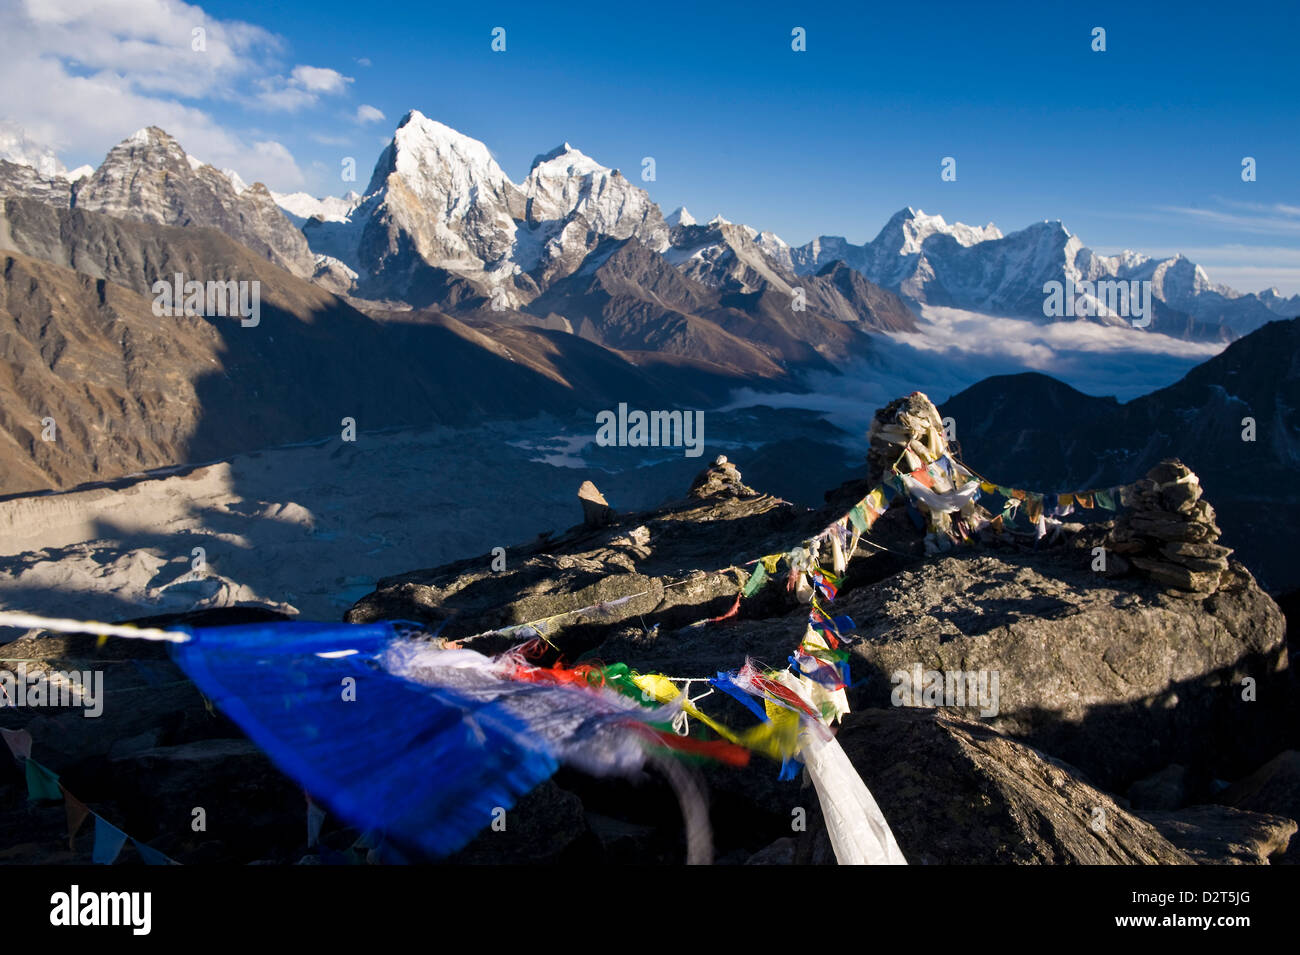 View from Gokyo Ri, 5300 metres, Dudh Kosi Valley, Solu Khumbu (Everest) Region, Nepal, Himalayas, Asia - Stock Image